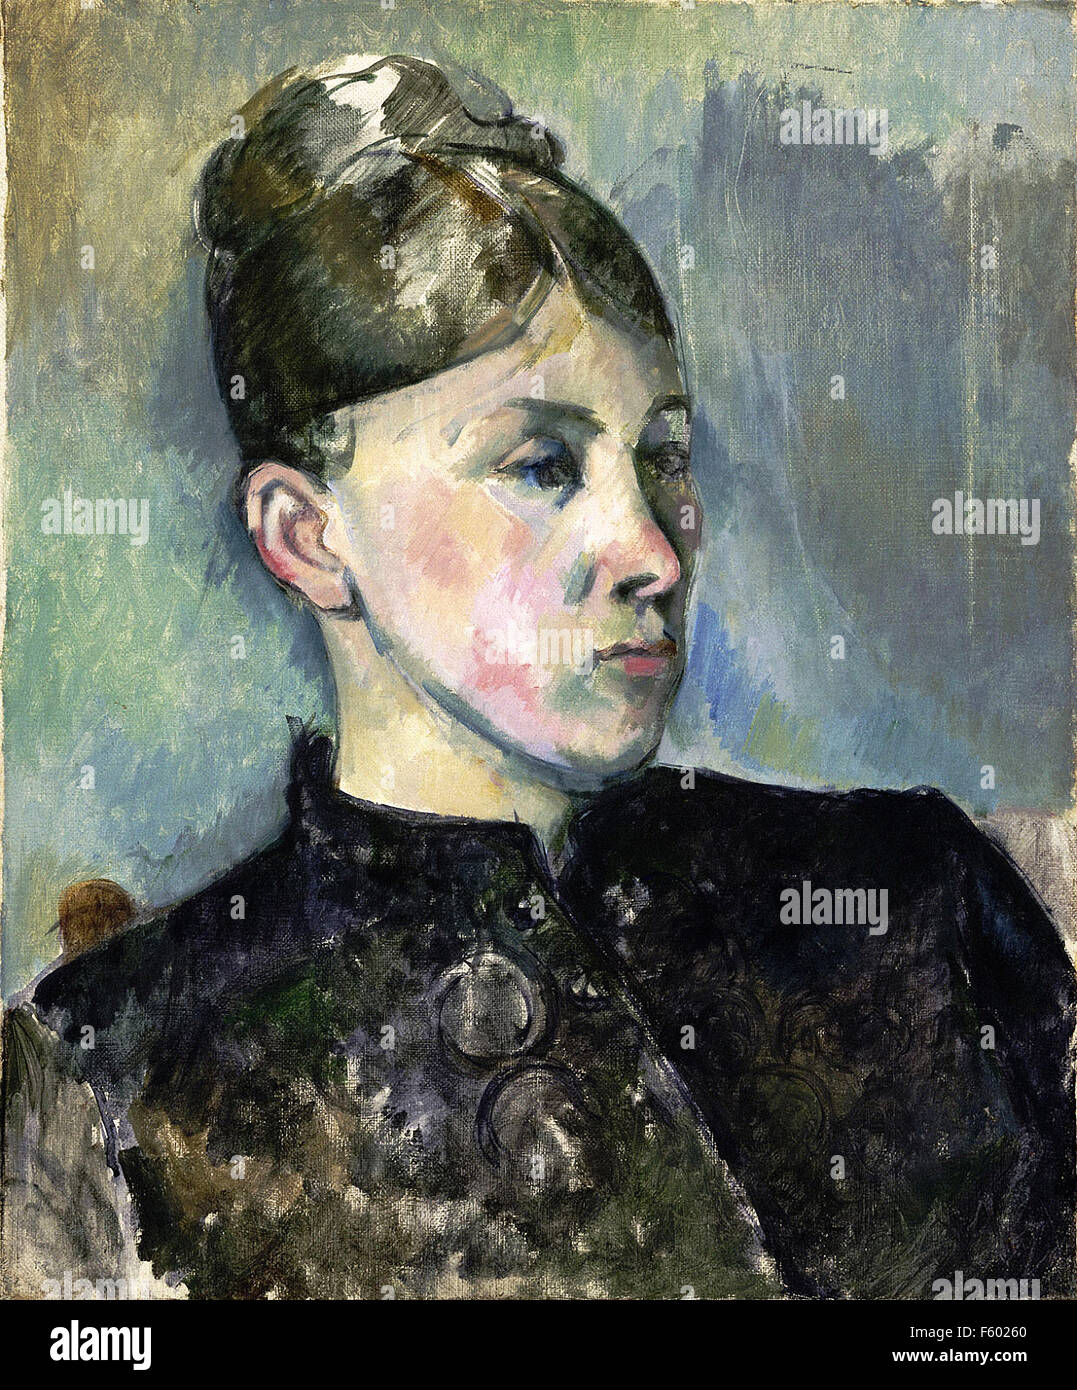 Paul Cézanne - Portrait of Madame Cézanne 12 - Stock Image